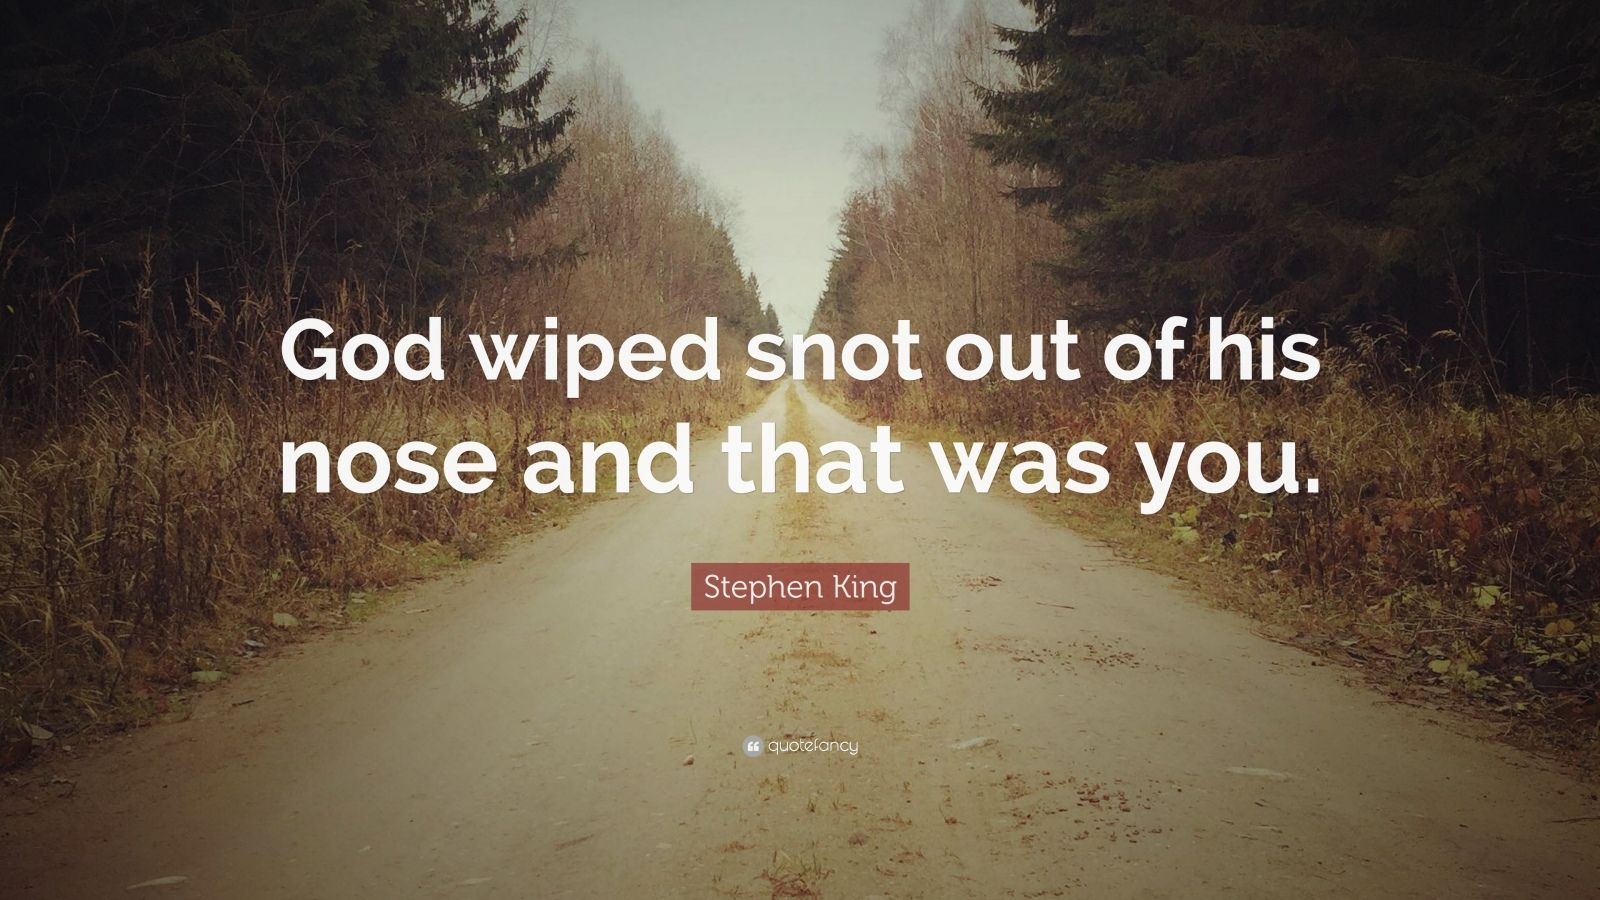 """Stephen King Quote: """"God wiped snot out of his nose and that was you."""""""